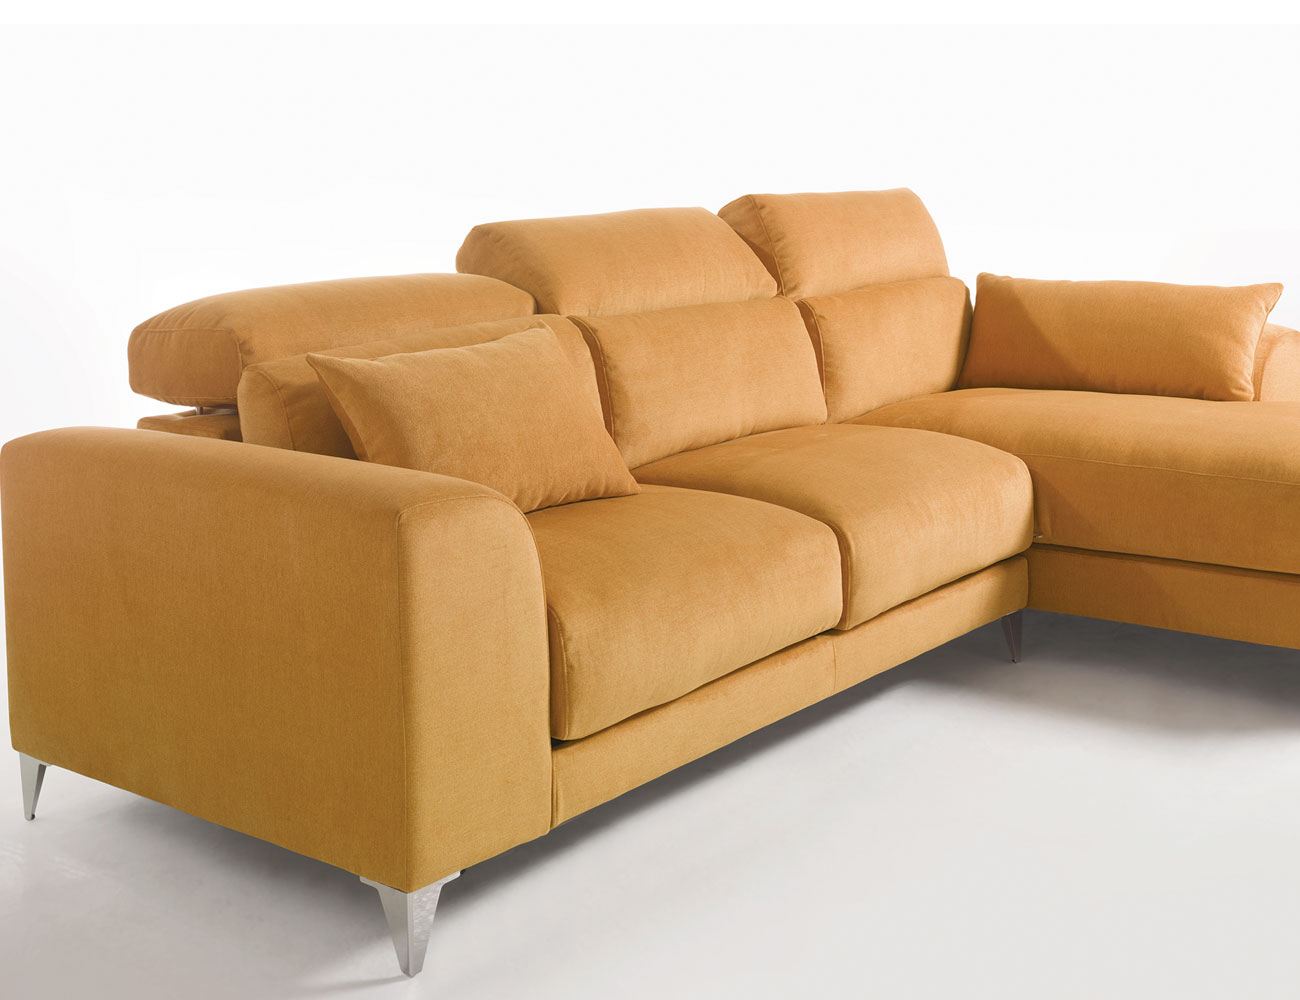 Sofa chaiselongue gran lujo decorativo patas altas amarillo 26